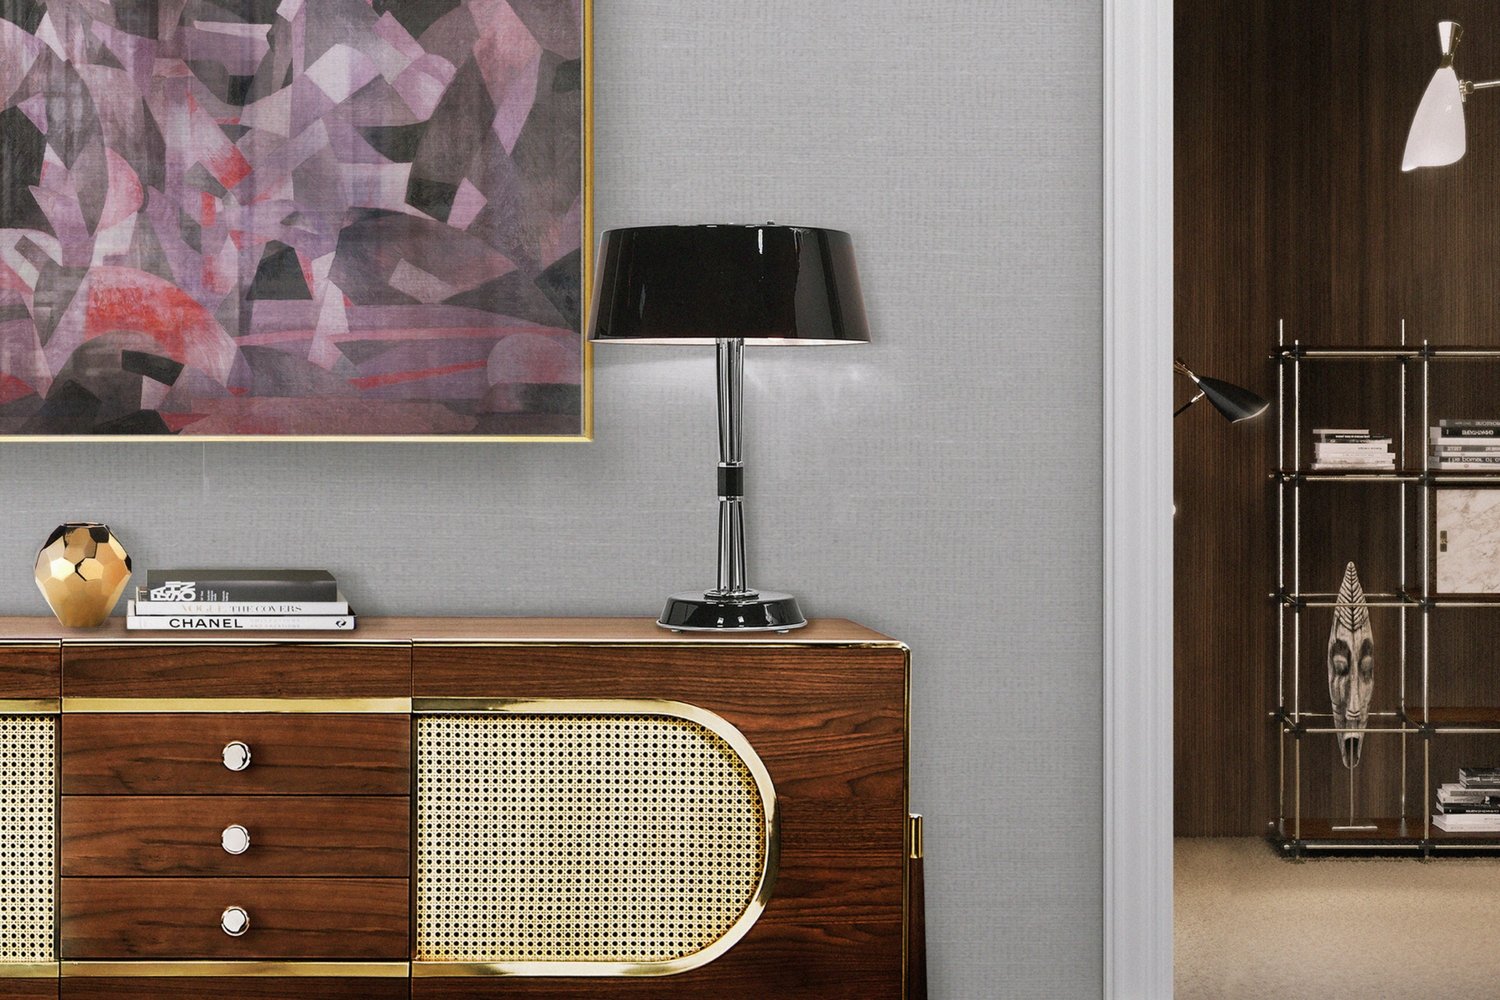 Dazzling Dining Room Table Lamps That Will Brighten Up Your House! FEAT